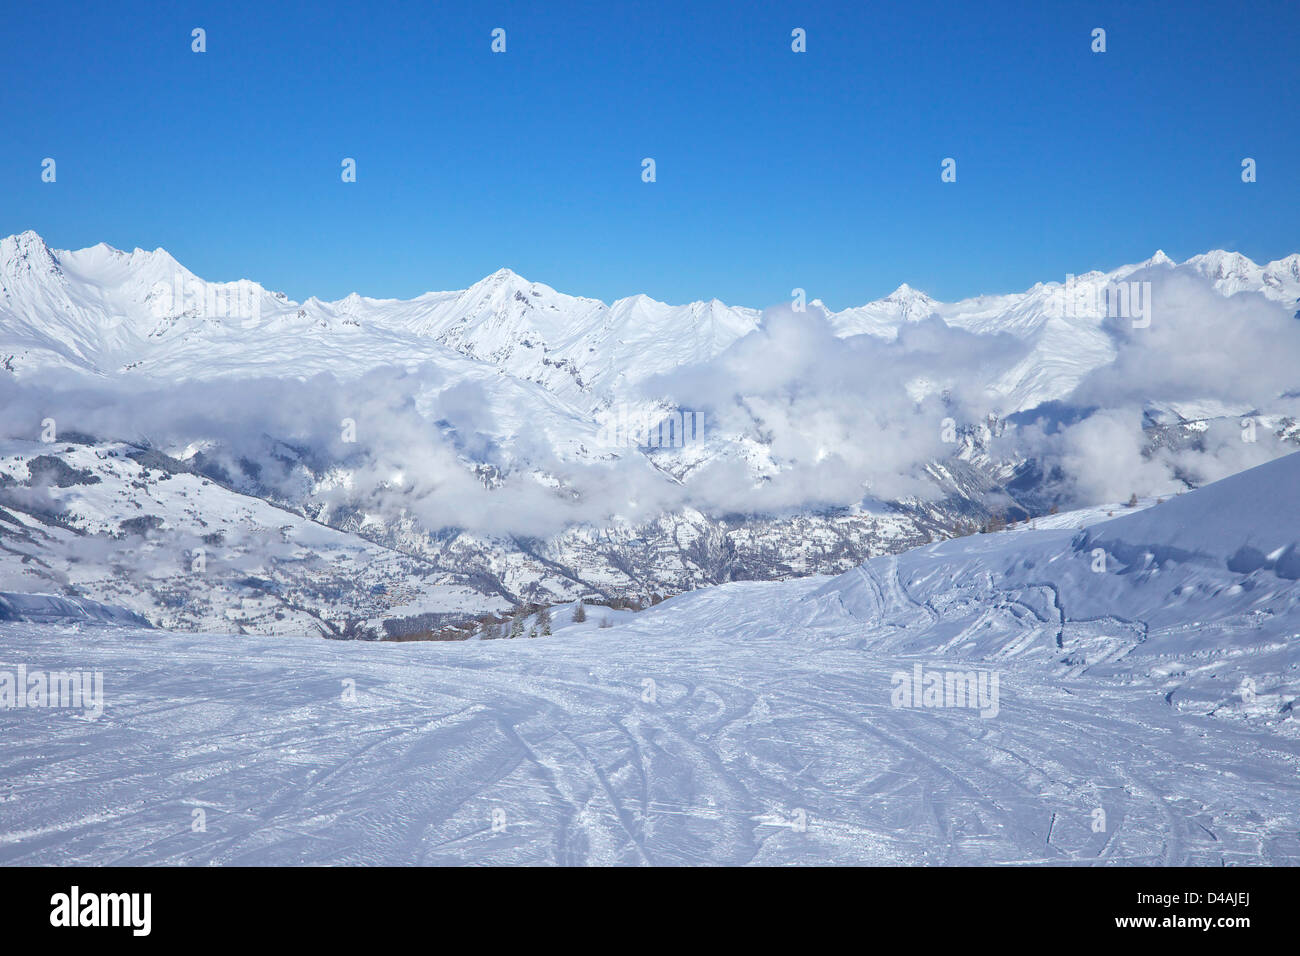 La Foret blue piste early morning, Les Arcs, Savoie, France, Europe - Stock Image